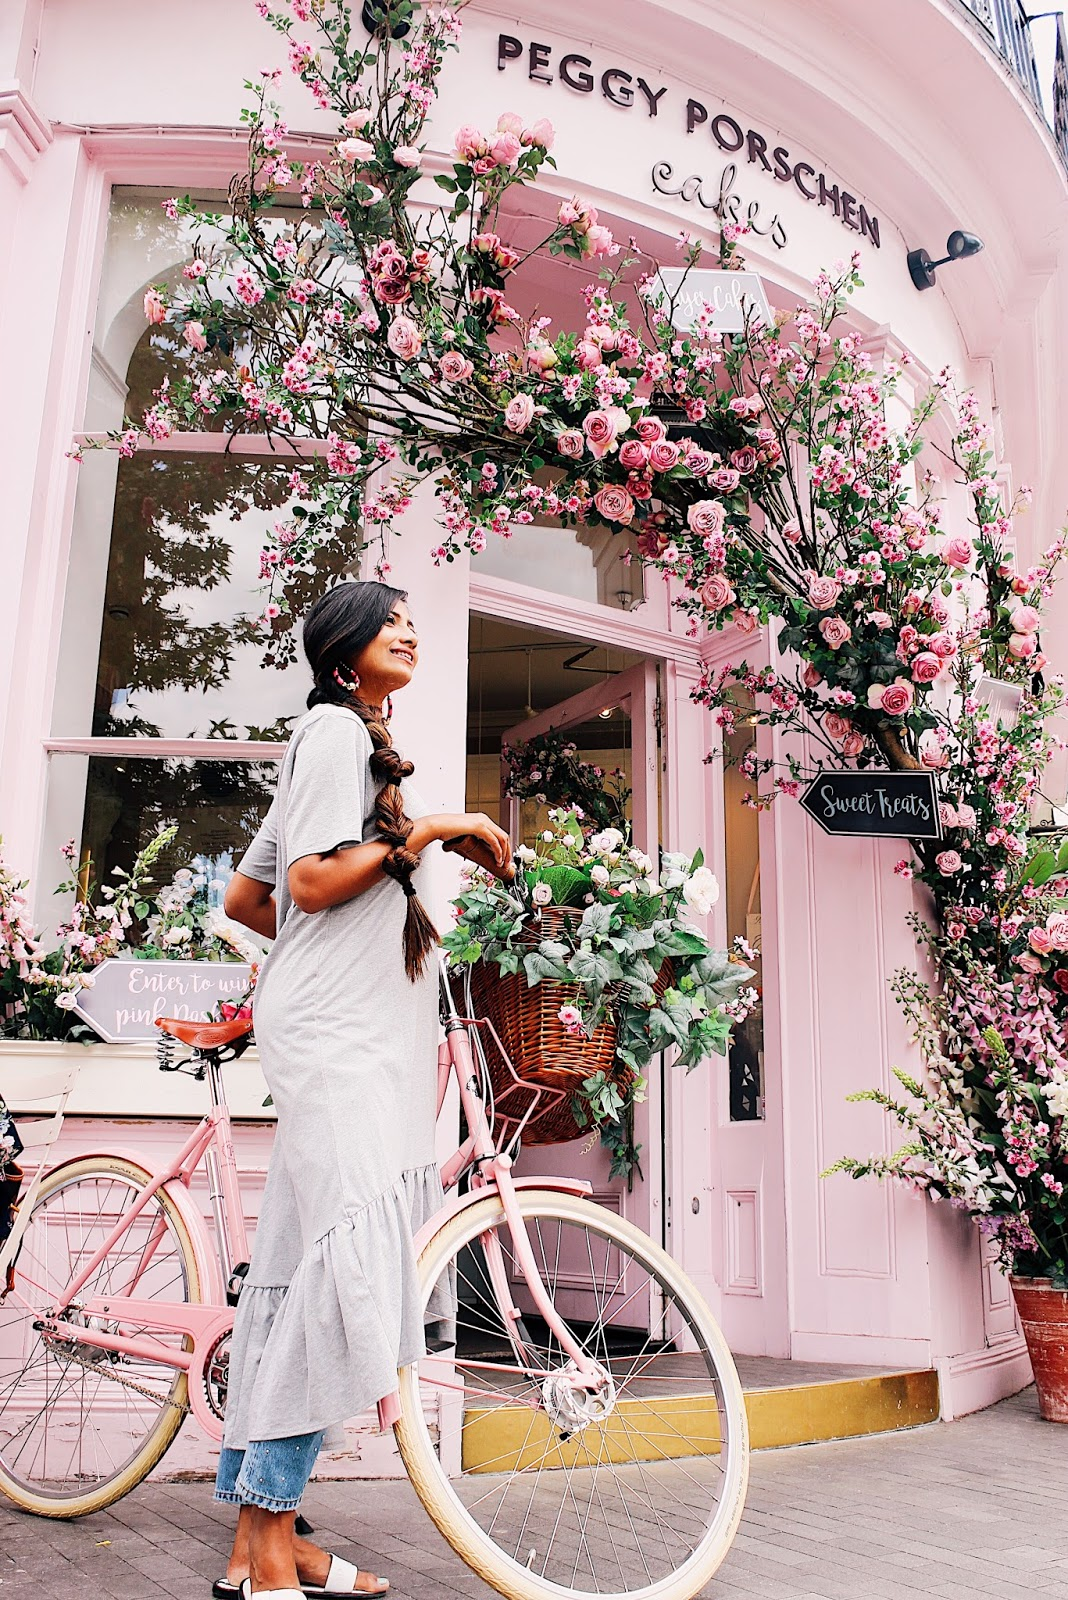 a girls instagram guide to london, instagram spots in london, instagram worthy places london, peggy porschen cakes, ebury street london, cupcakes london